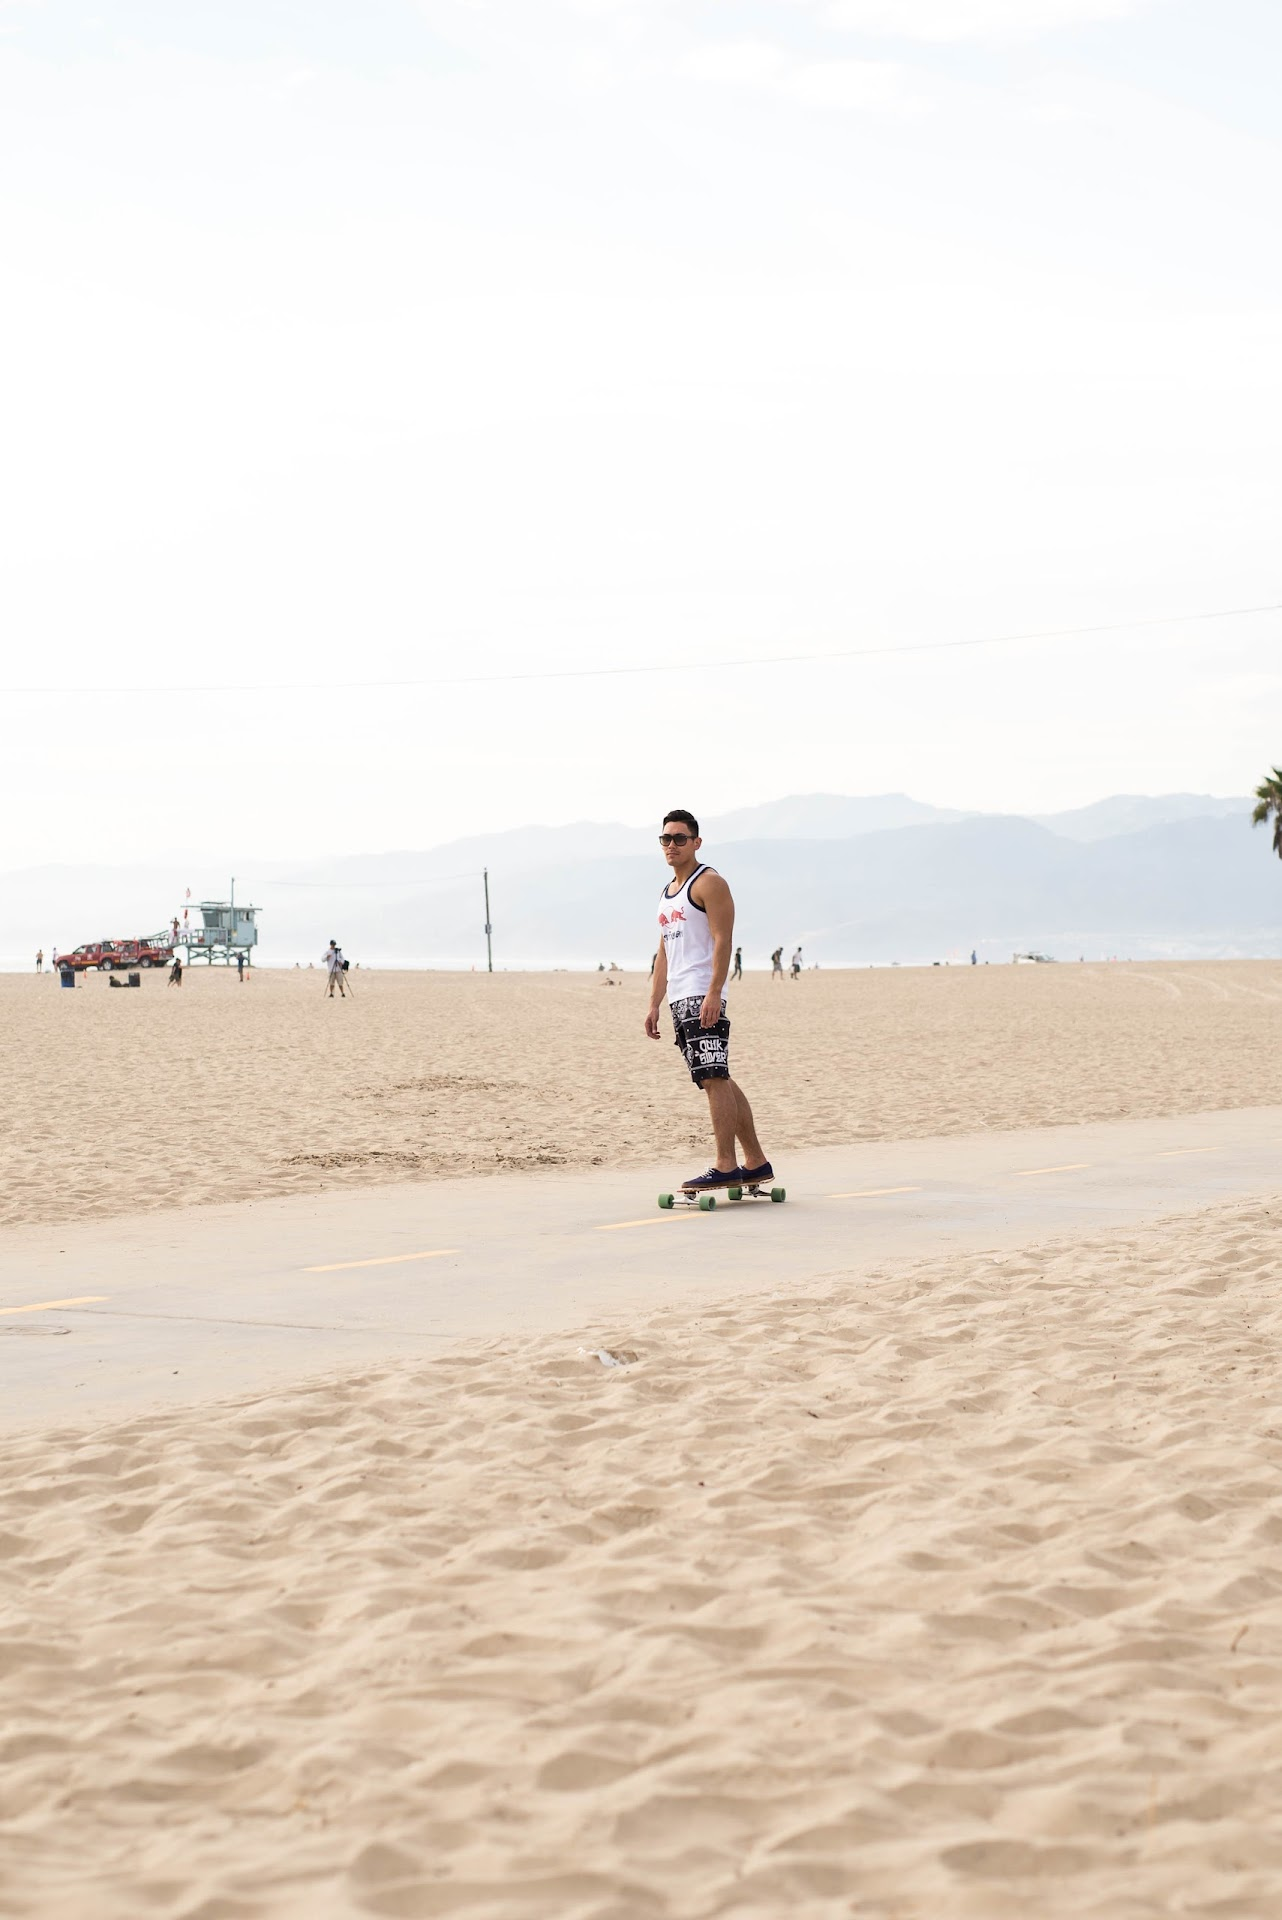 venice beach, socal, southern california, blogger, travel, best beaches, lds mormon